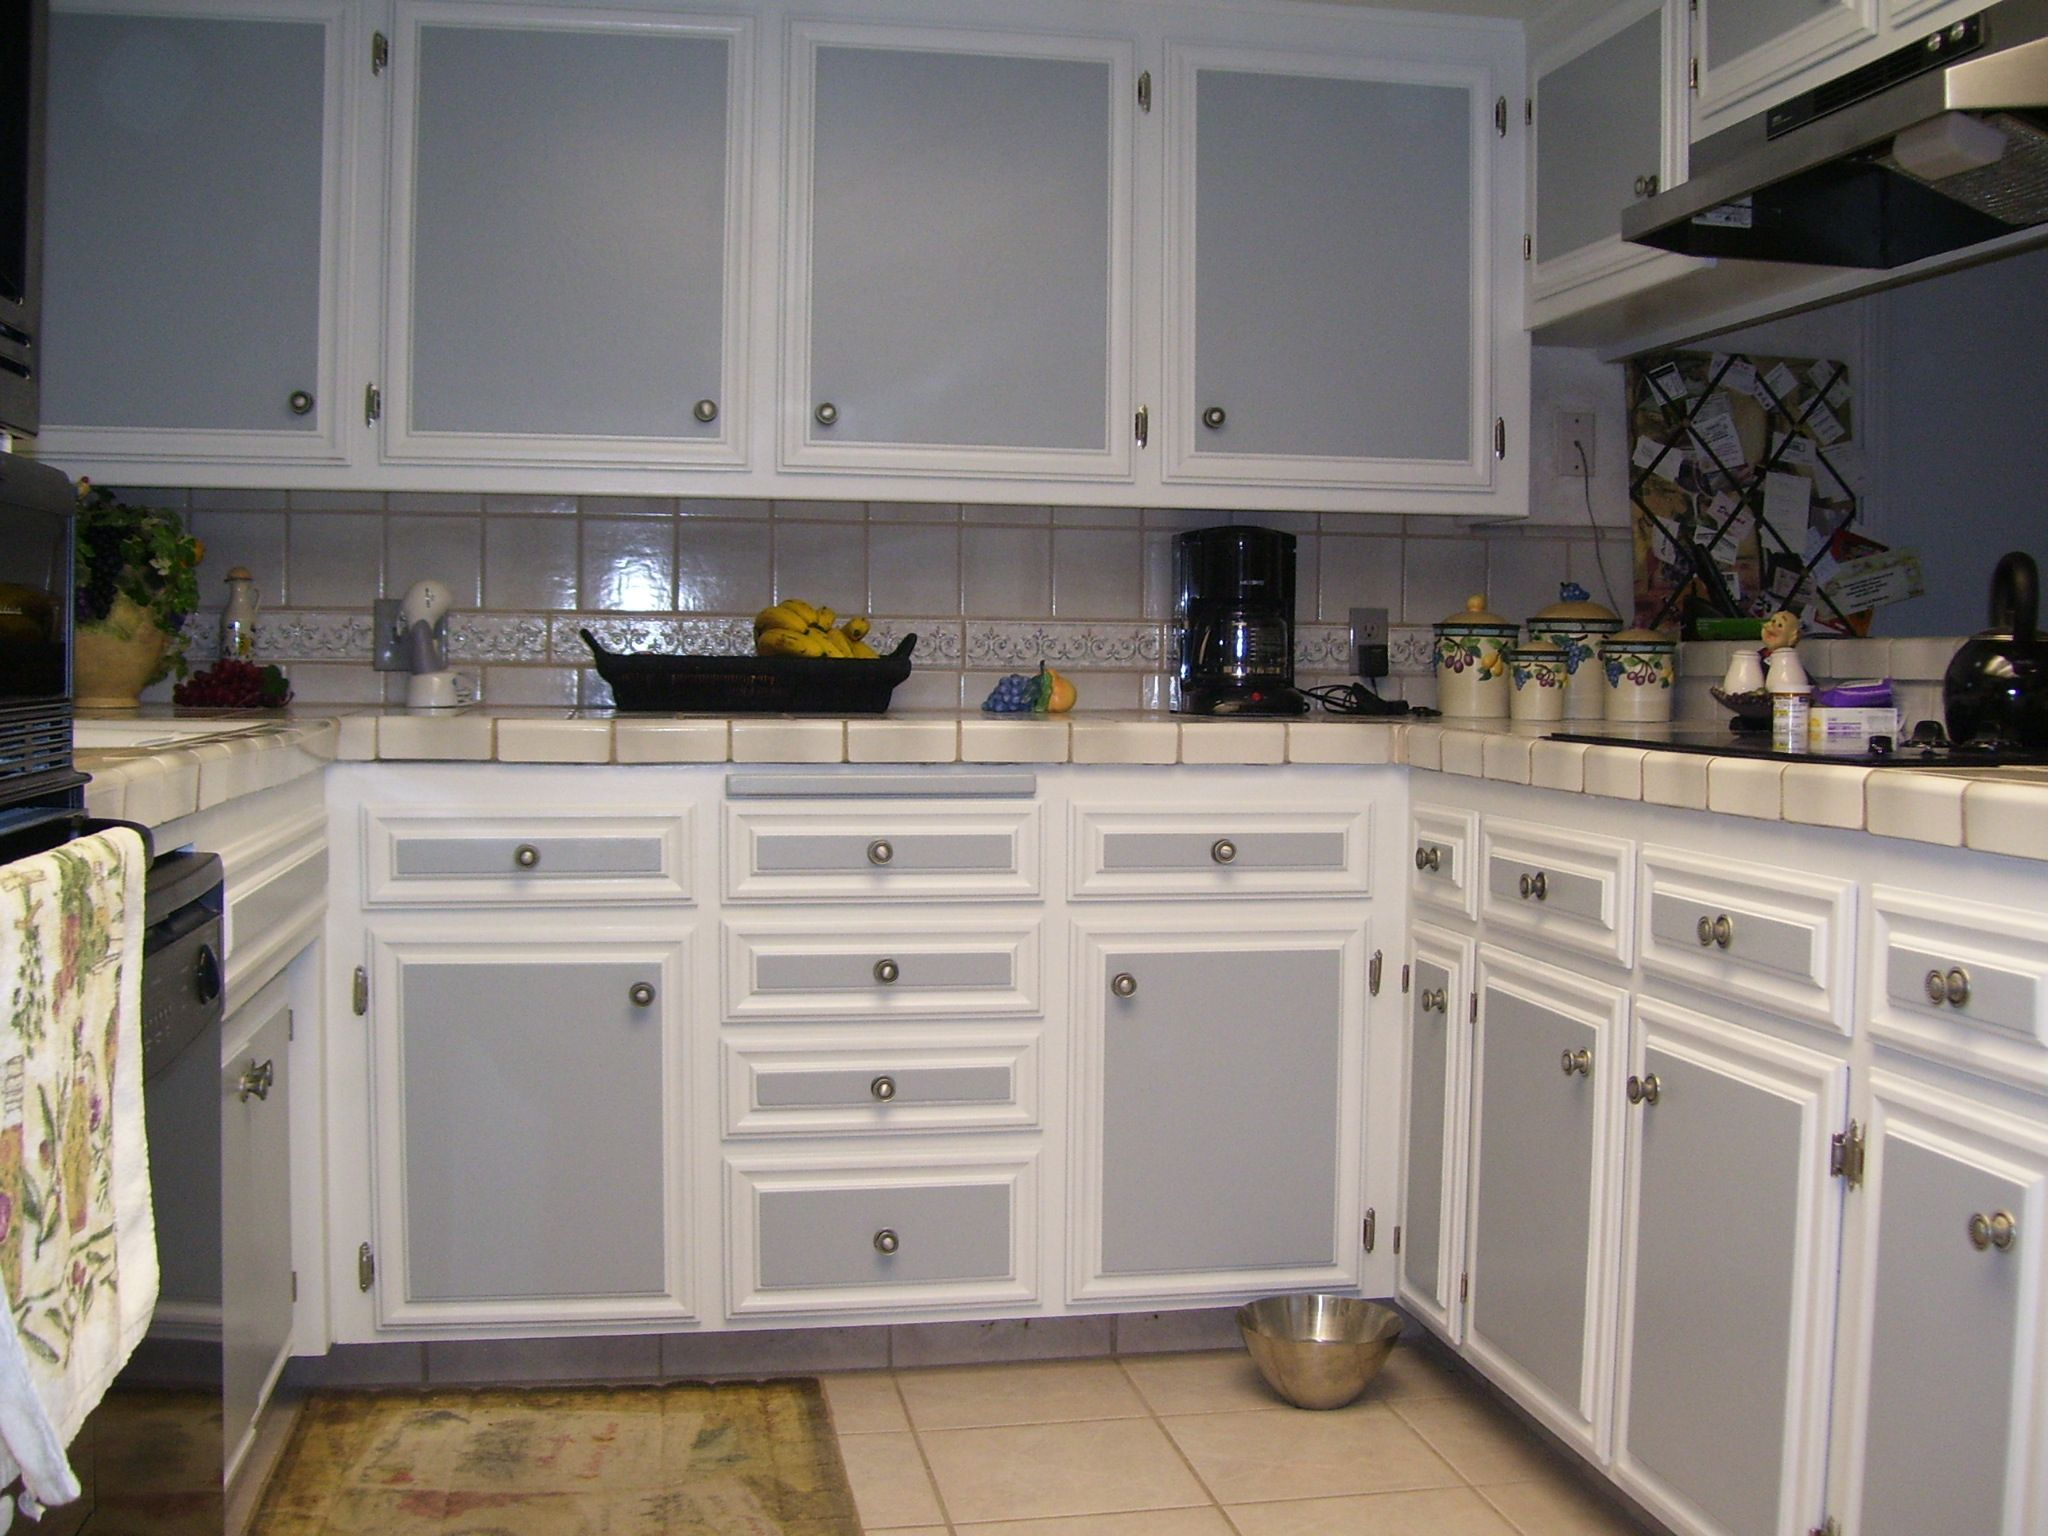 Kitchen Cabinets Two Colors ideas for painted kitchen cabinets rustic crafts chic decor. is